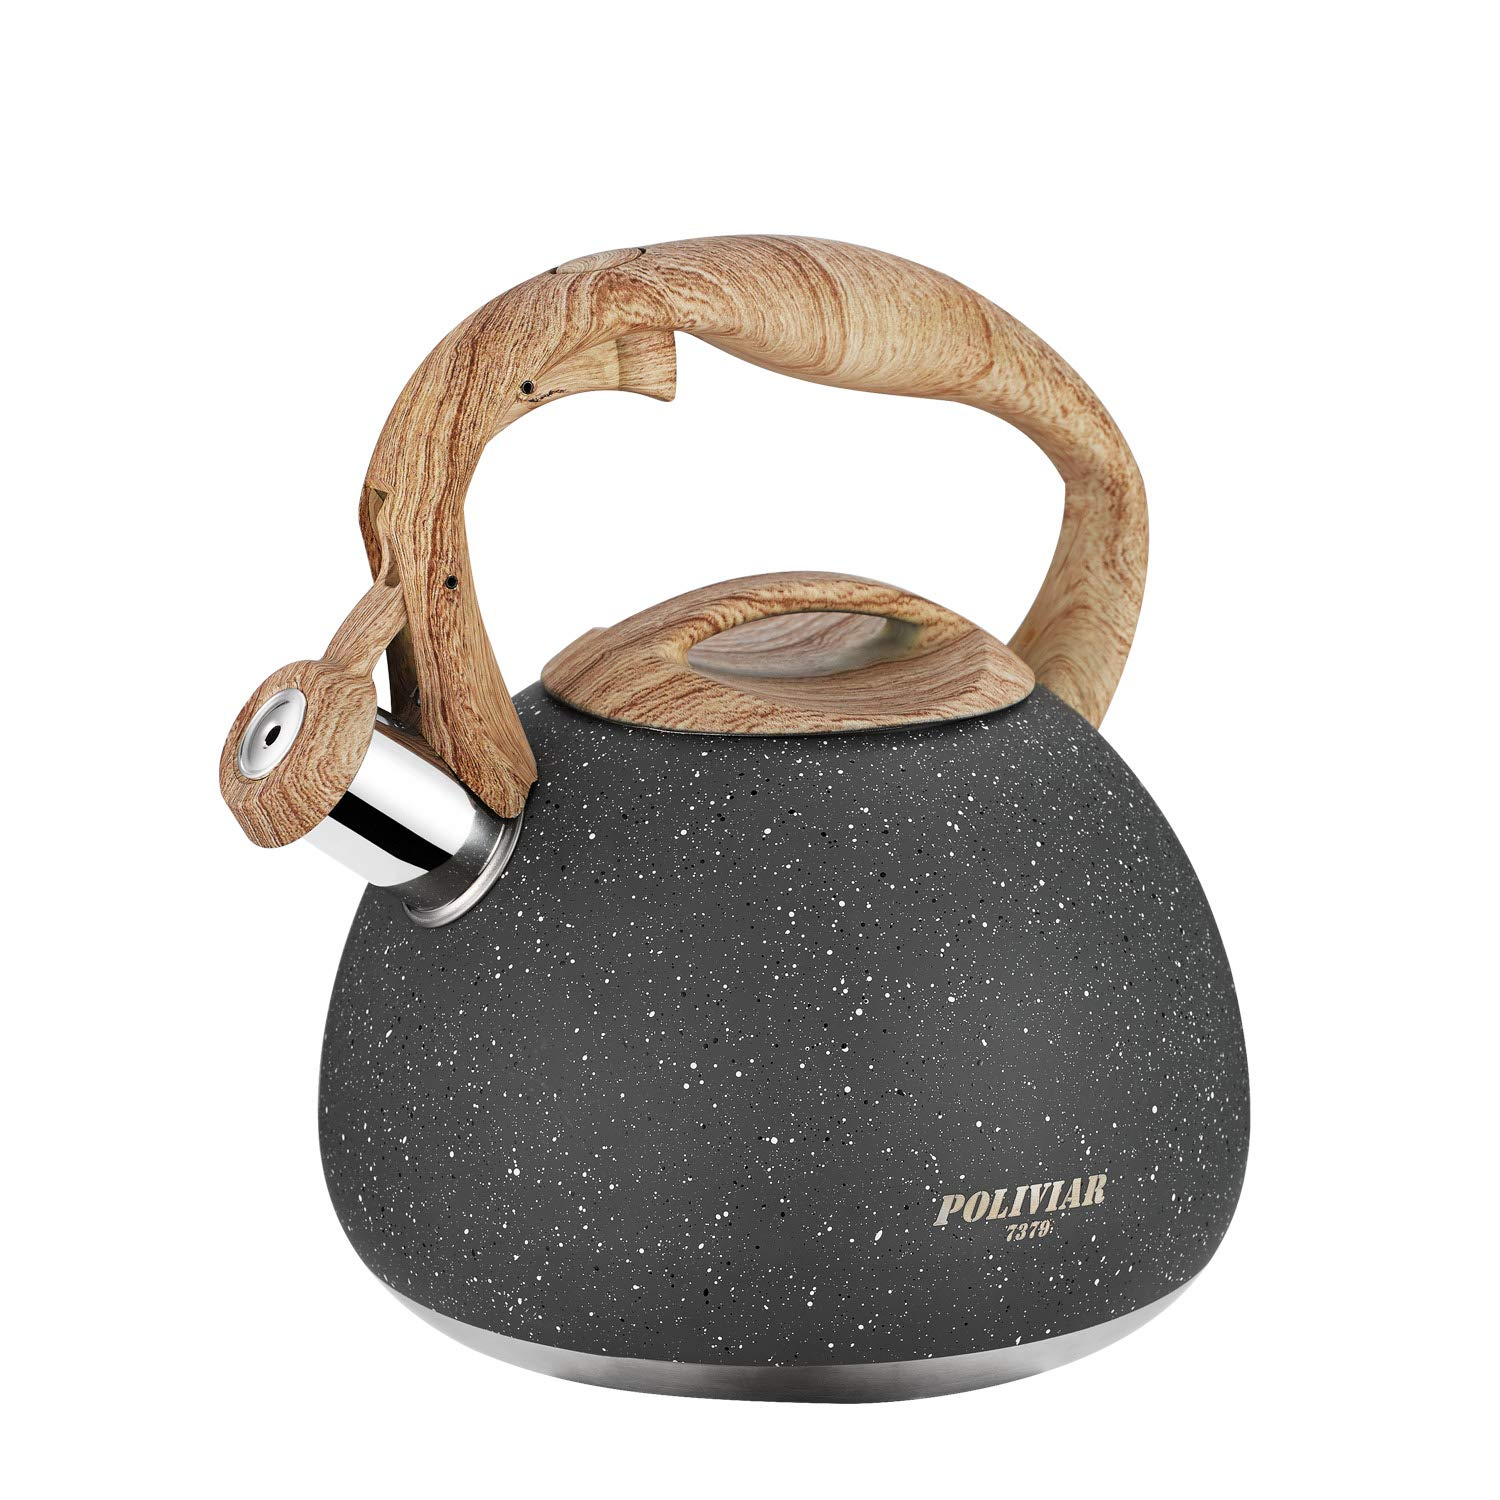 Poliviar Tea Kettle, 2.7 Quart Natural Stone Finish with Wood Pattern Handle Loud Whistle Food Grade Stainless Steel Teapot, Anti-Hot Handle and Anti-Rust, Suitable for All Heat Sources (JX2018-GR20) by POLIVIAR 7379